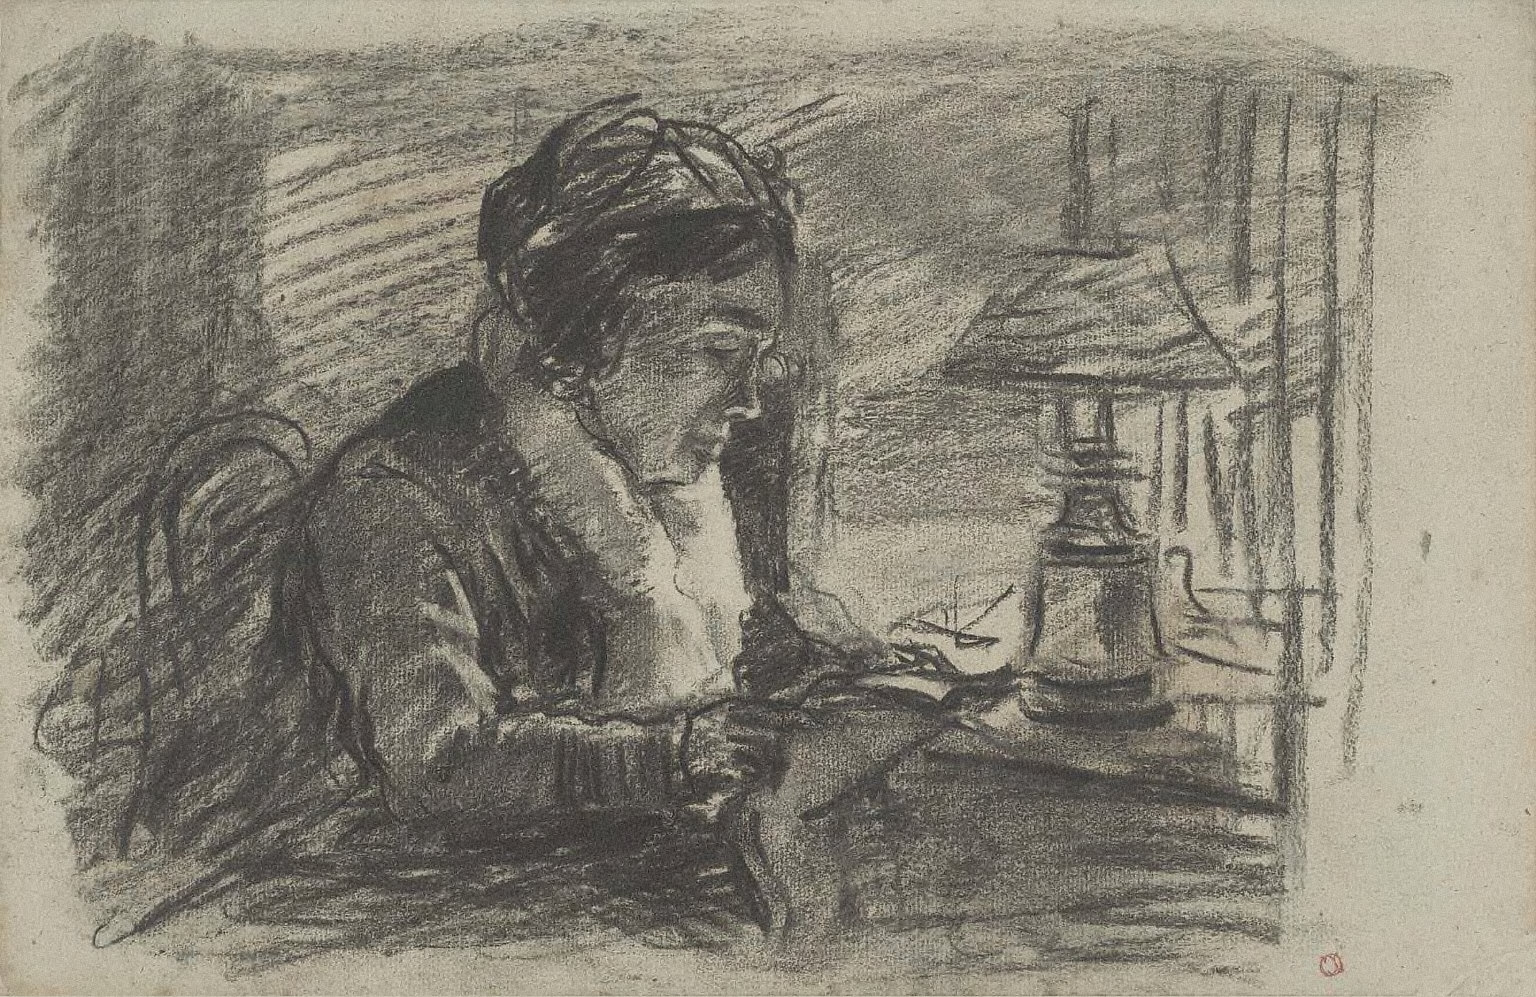 Old Woman Seated by Oil Lamp